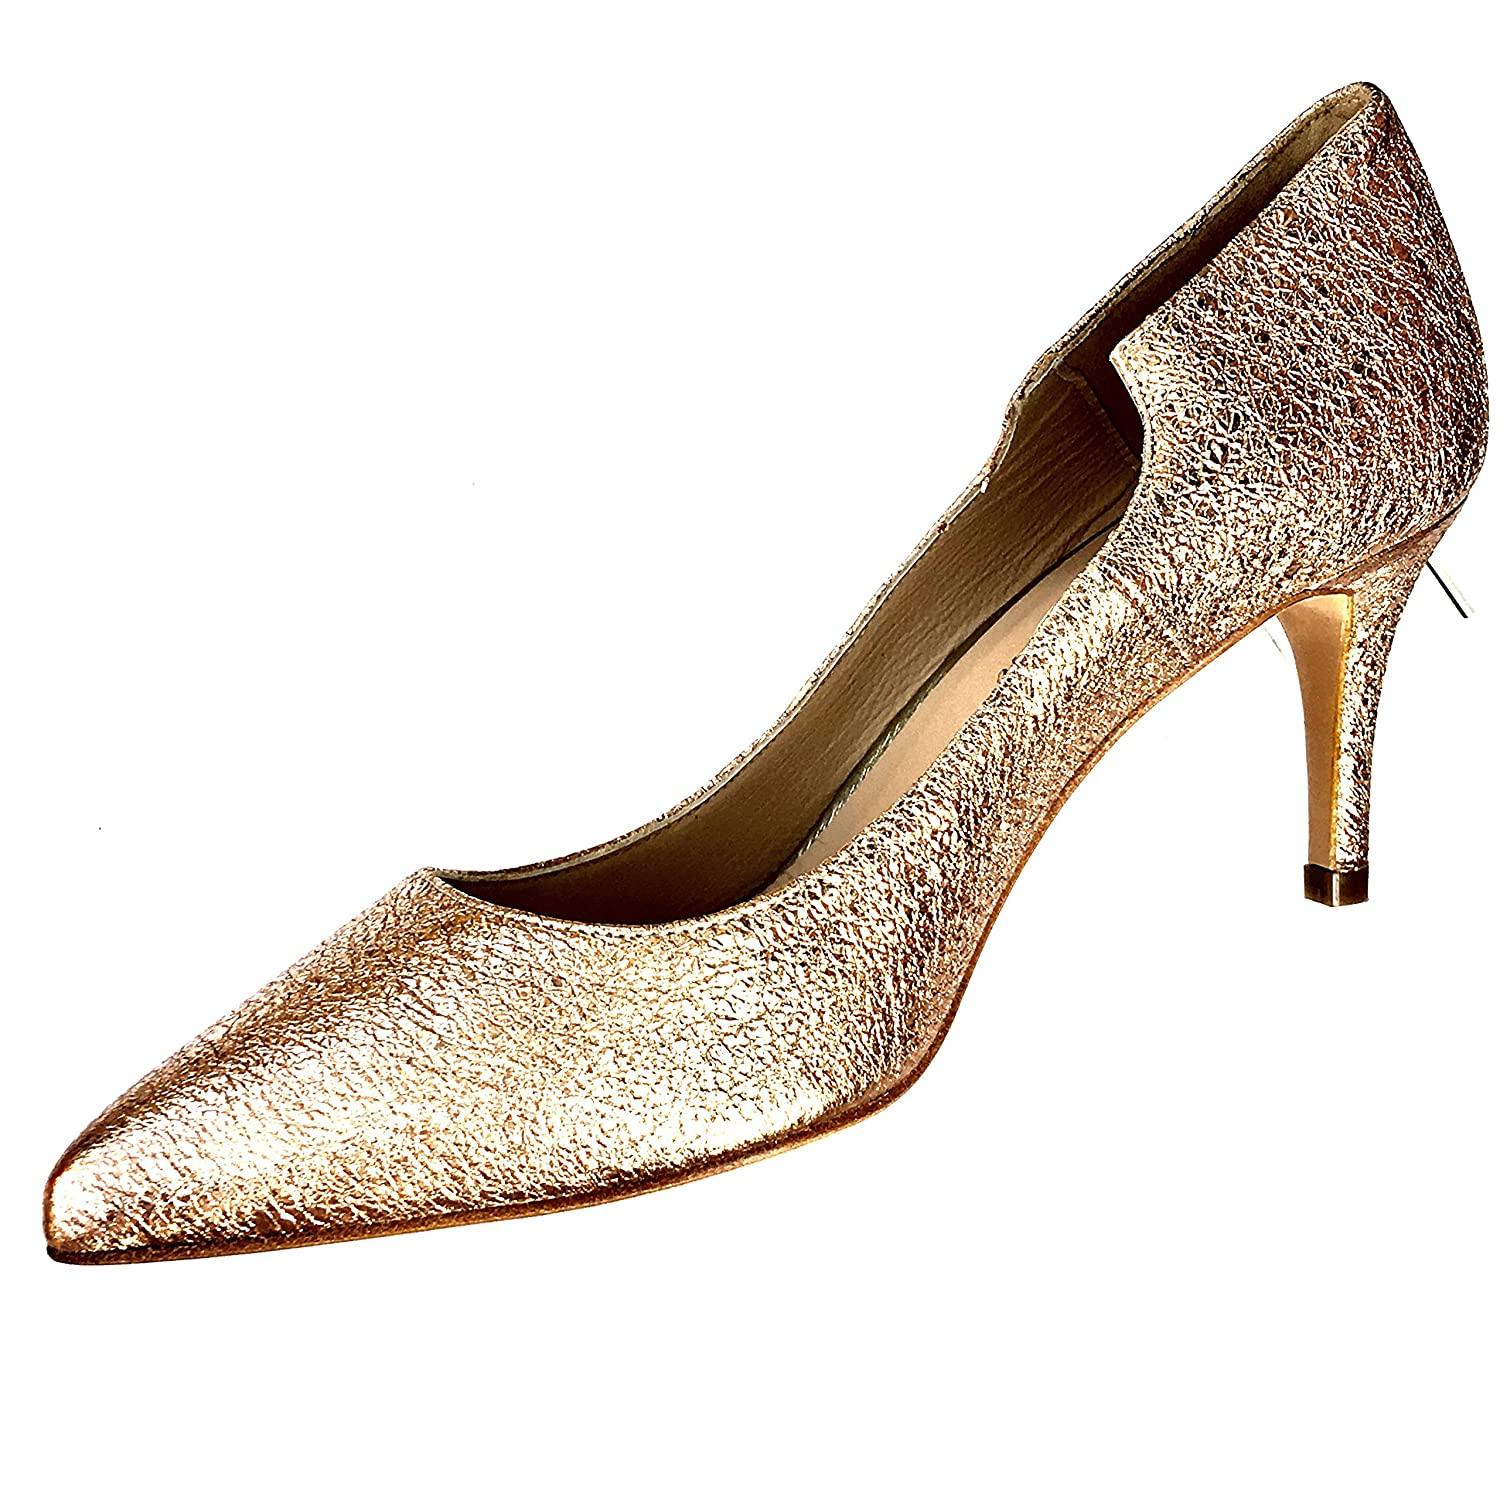 JAY KAPLAN 400 Dollar Gorgeous Womens All Leather Made in Spain Low Heel Pump, Sofia B07BV6G861 38= 7 to 7.5|Gold Flake Metallic